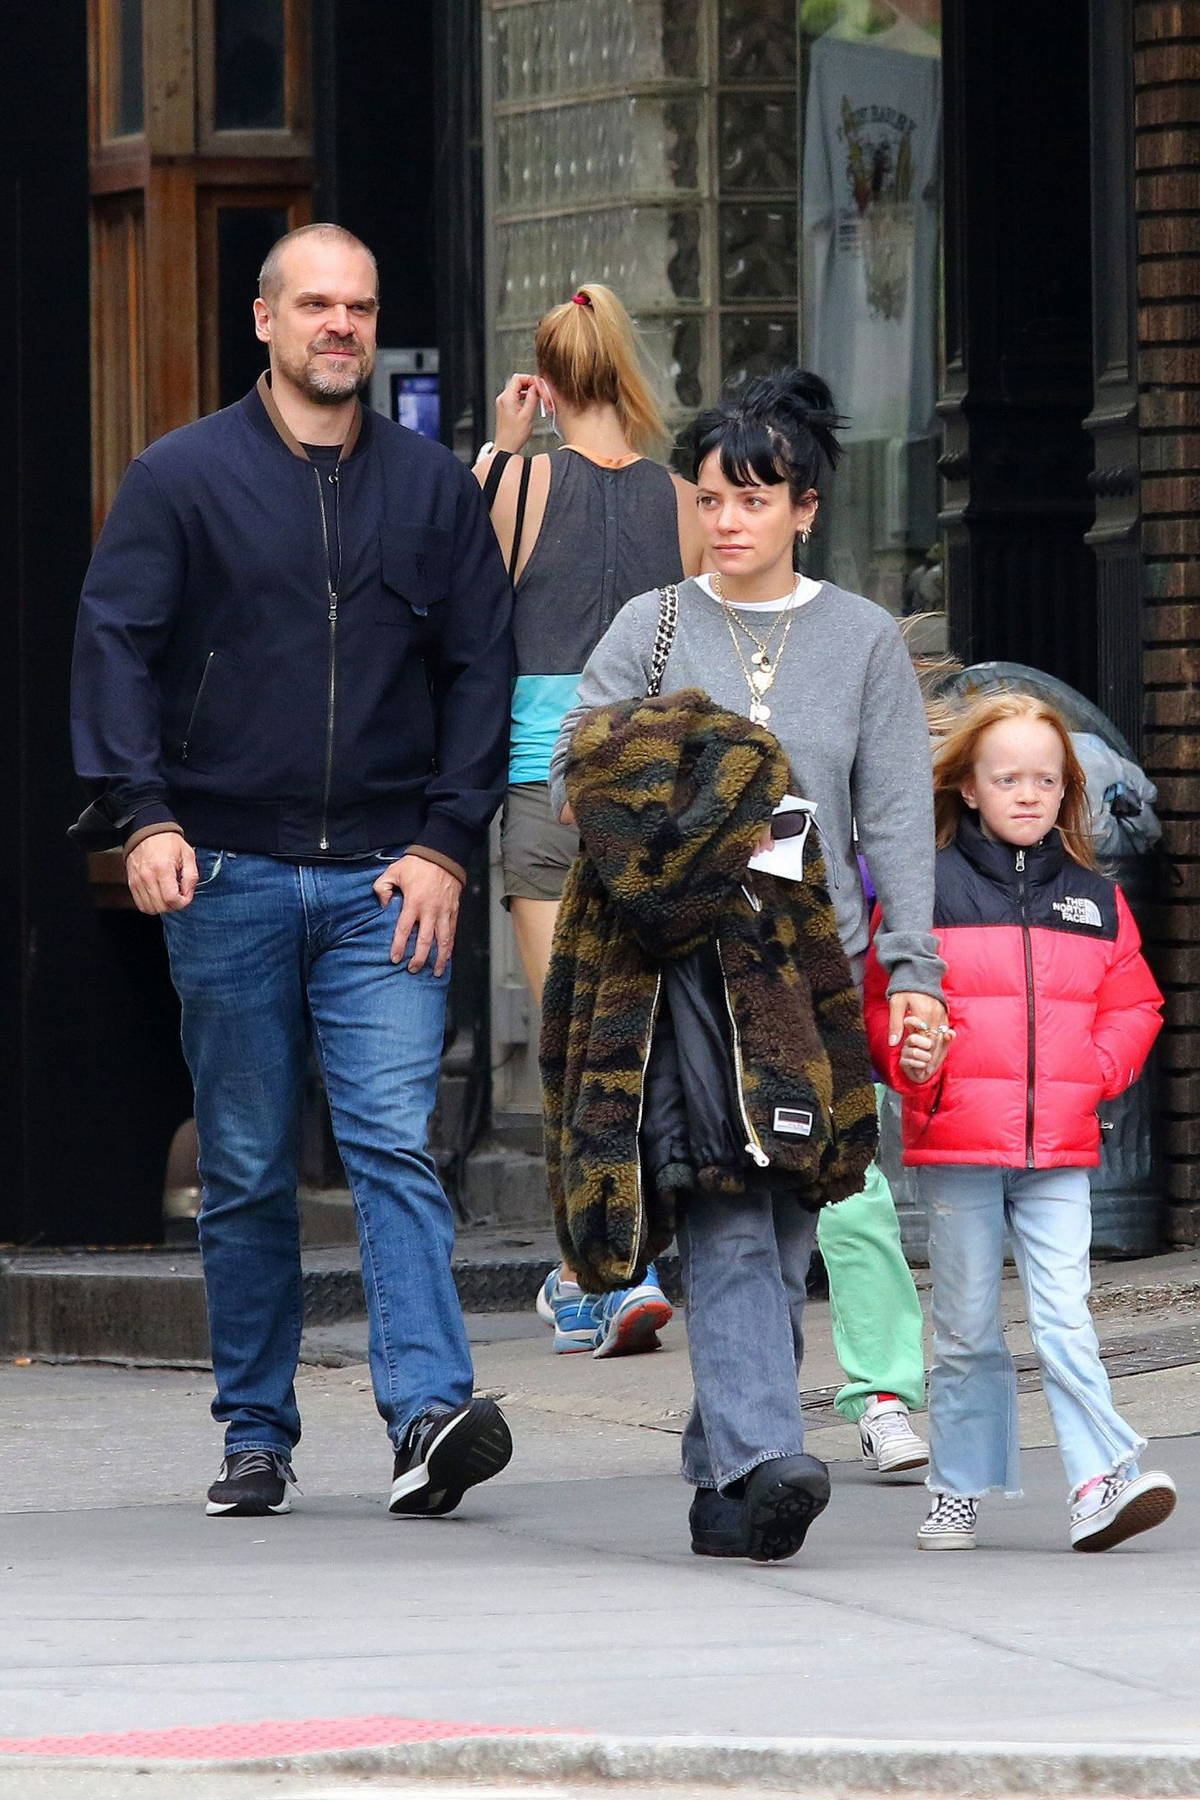 Lily Allen steps out for a walk out with her kids and husband David Harbour in Manhattan, New York City